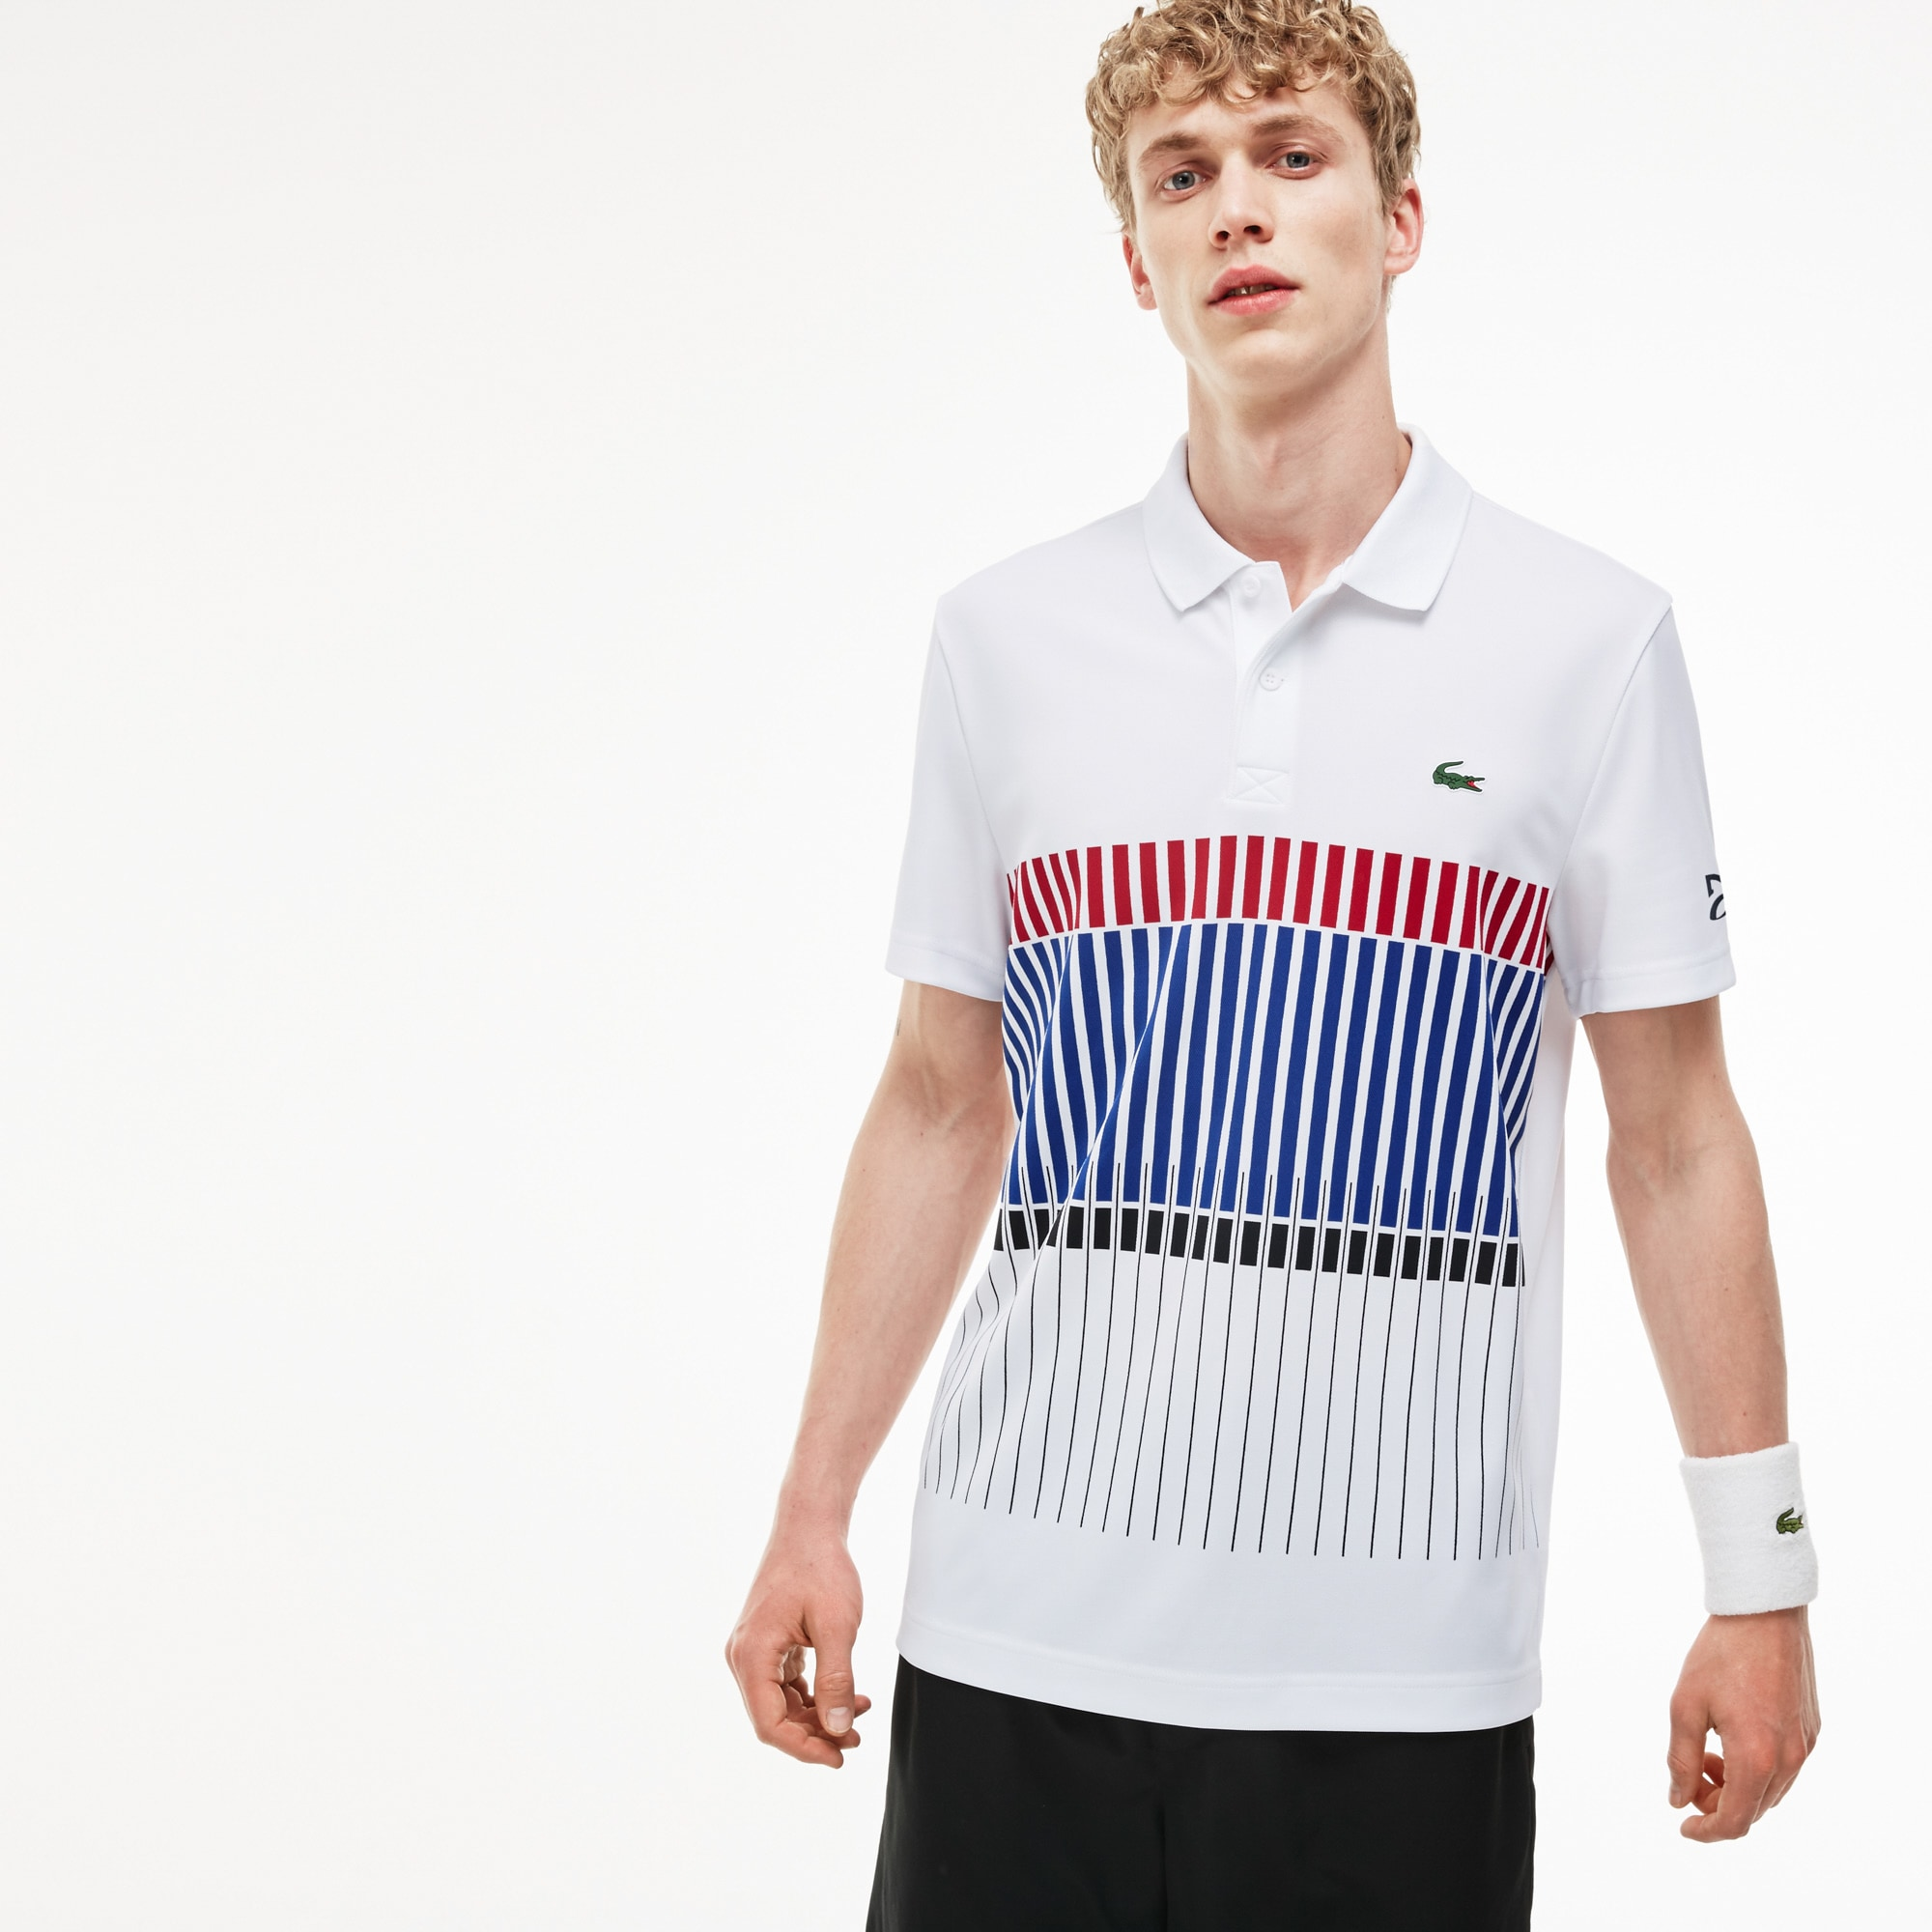 Men's Polo Lacoste x Novak Djokovic - Exclusive Edition